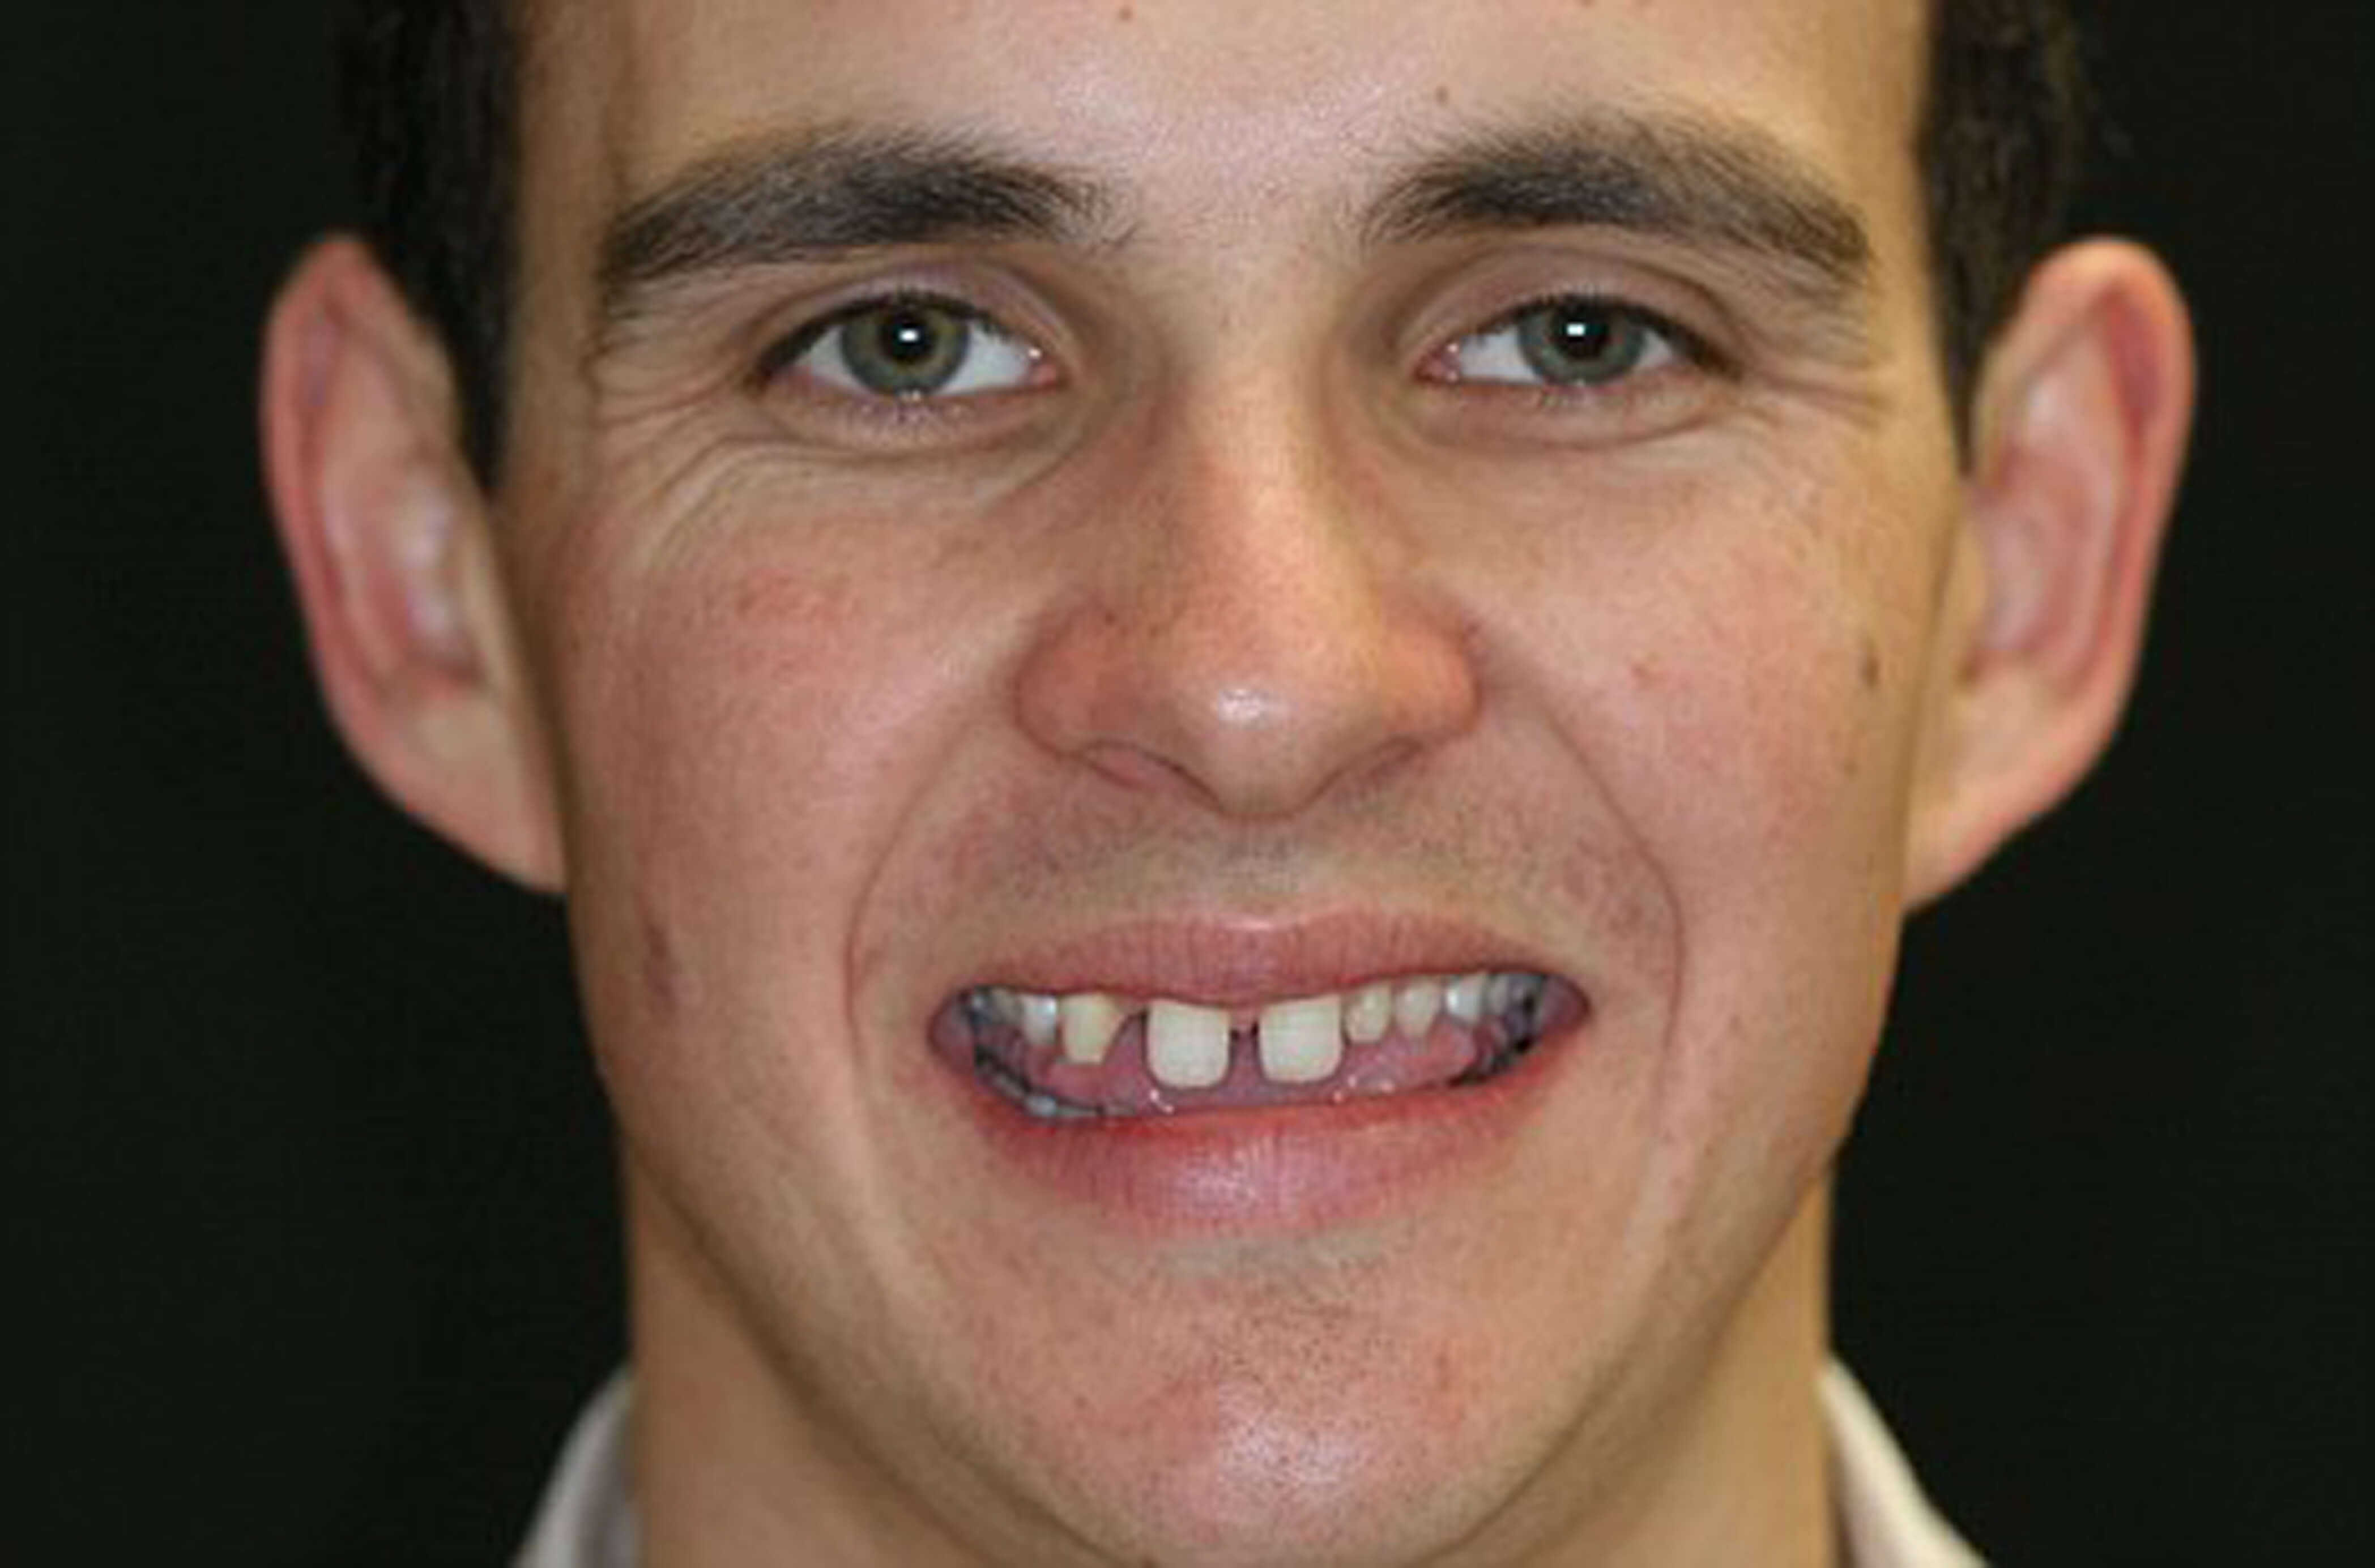 restoring smiles research targets mutation linked to missing